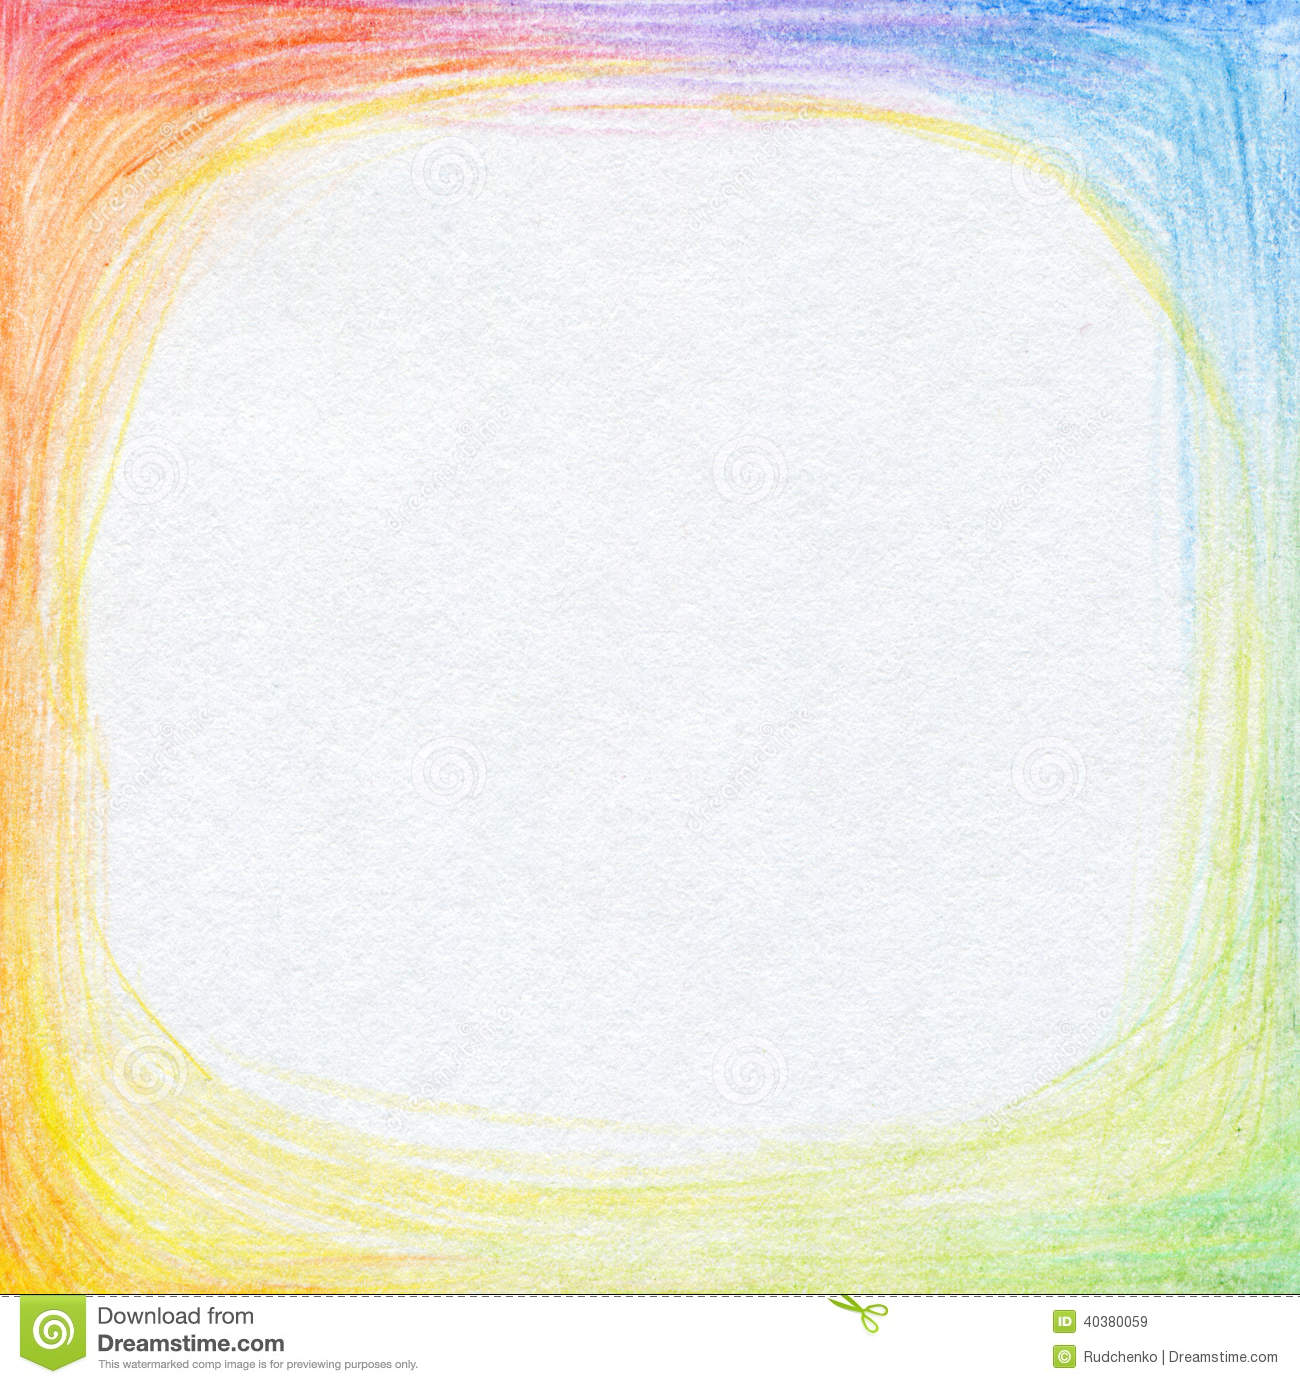 Scribbles Drawing And Coloring Book : Abstract color pencil scribbles background stock image